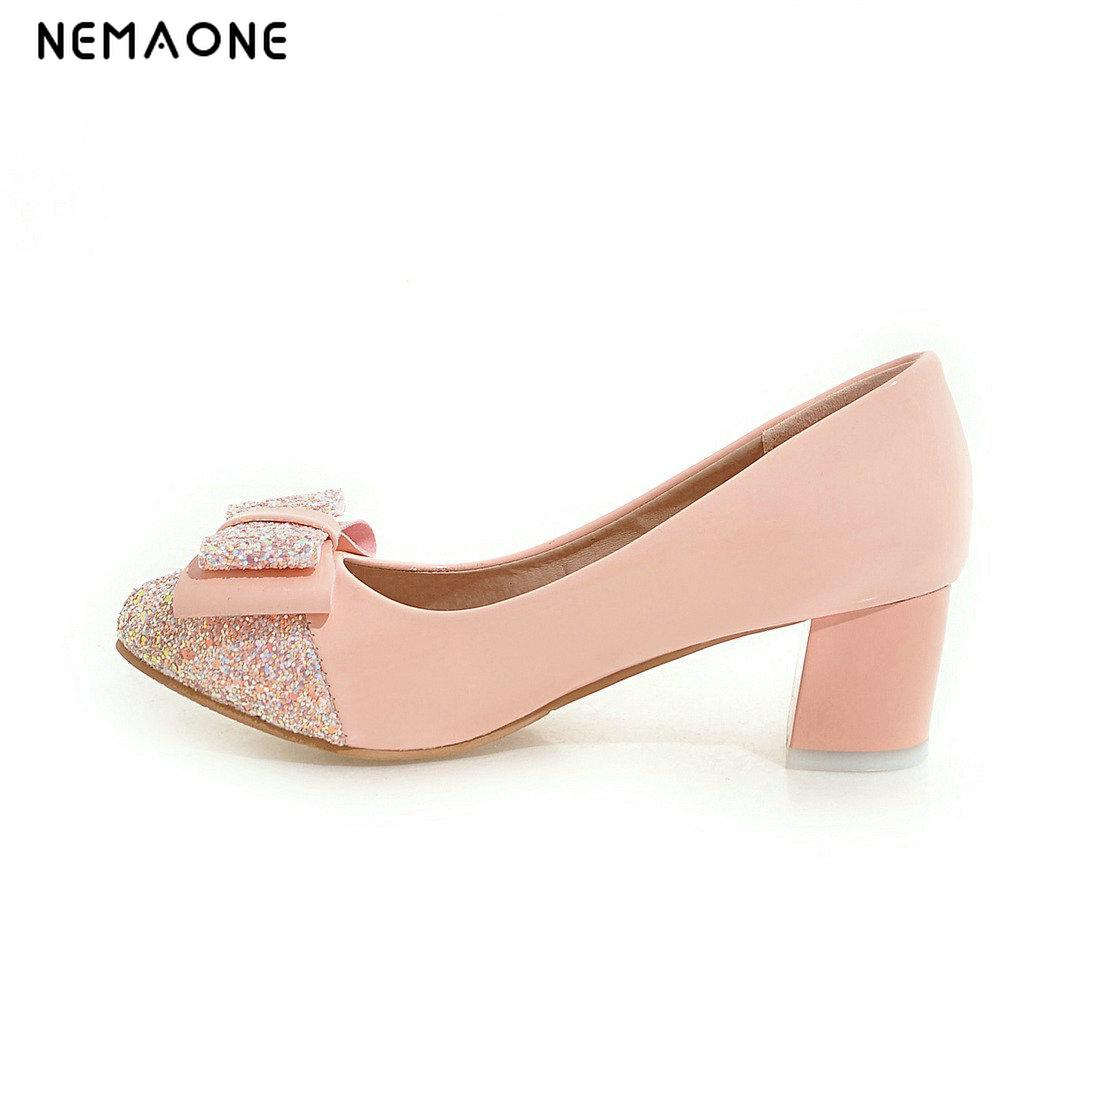 NEMAONE 2017 Women Pumps Square High Heel Platform Pointed Toe Slip On Ladies Wedding Shoes Size 34-43 vinlle 2017 women pumps college style square med heel vintage slip on pu leather shoes casual round toe girl shoes size 34 40